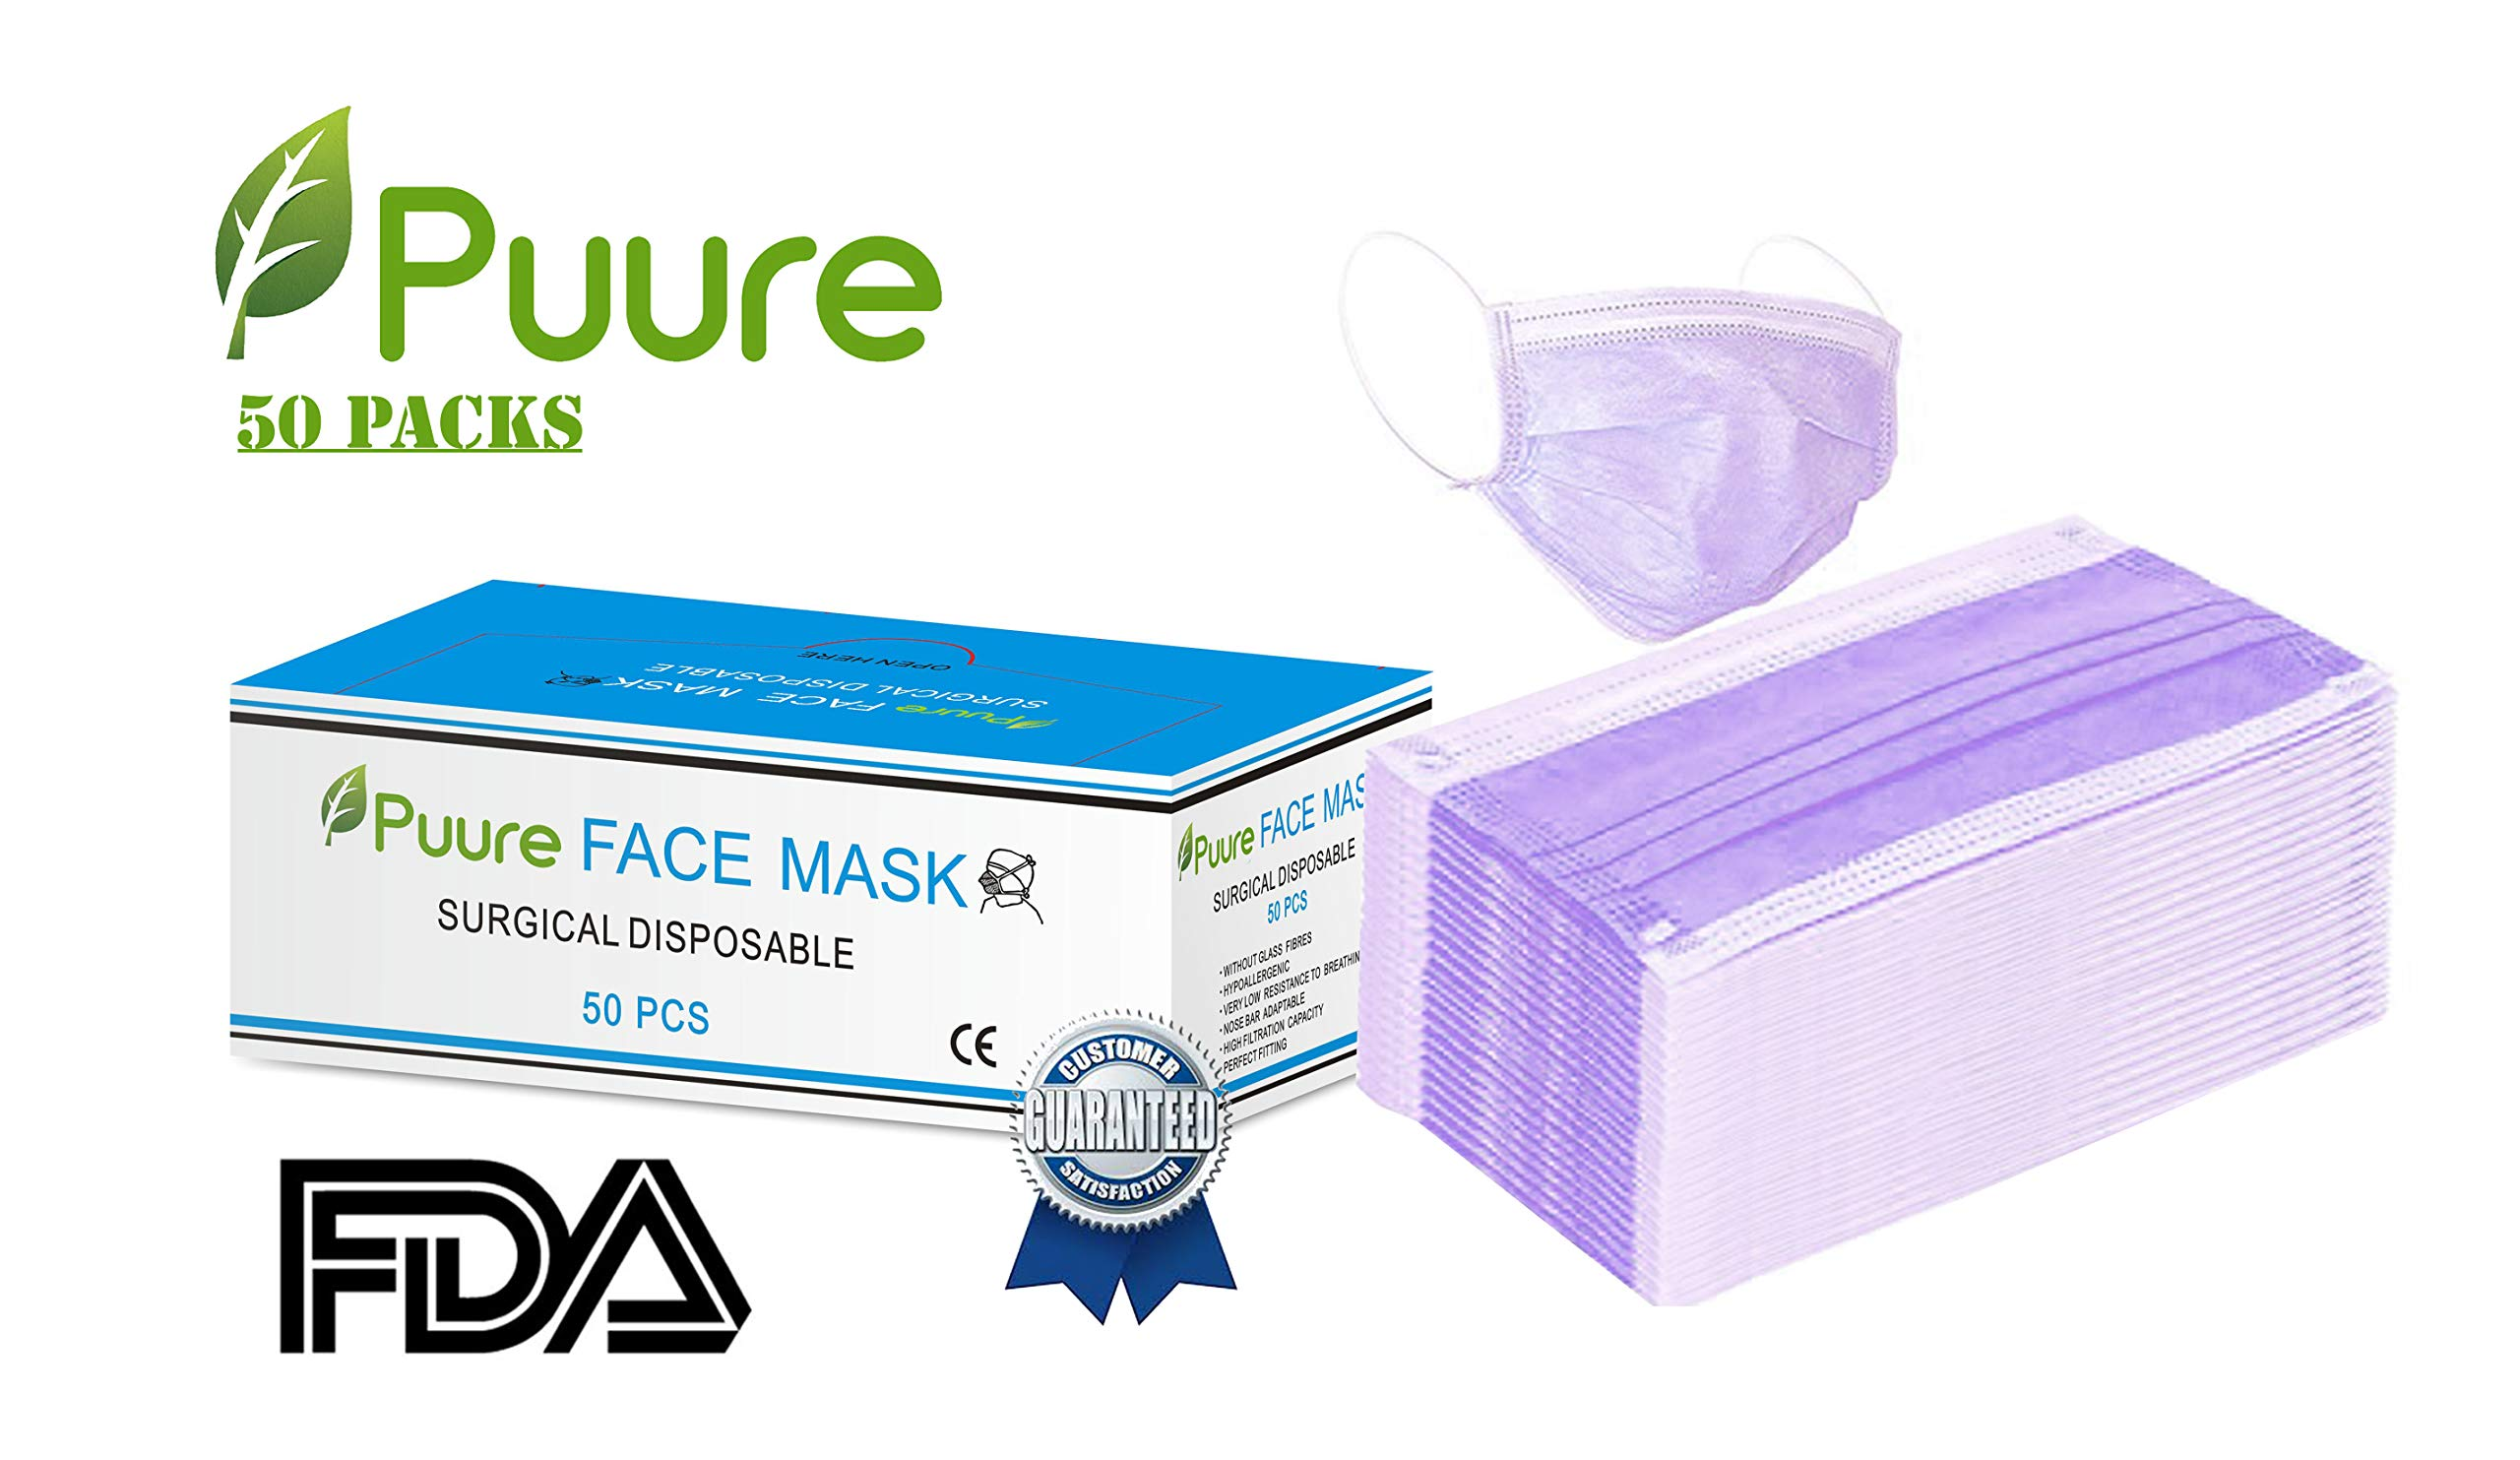 Puure Earloop disposable medical face masks, filtered face mask, surgical masks disposable antiviral. Pack of 50